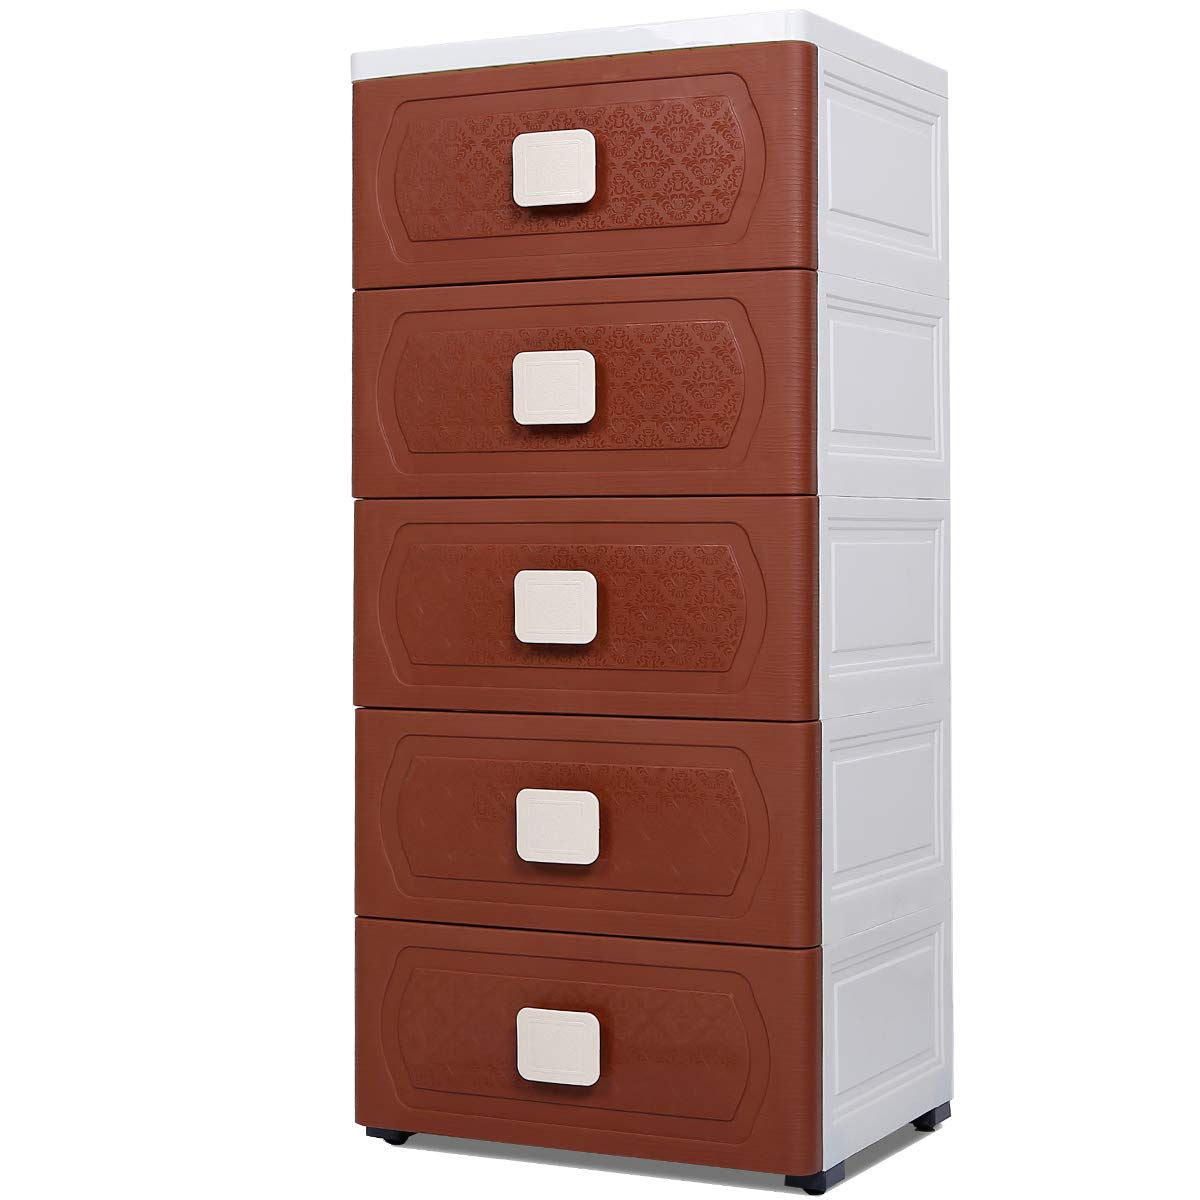 Nafenai Storage Cabinet 5 Drawer,Storage Drawers Cart with Wheel,Dressers for Bedroom/Livingroom,Small Plastic Home Office Corner Cabinets,Lightweight&Removable,Brown